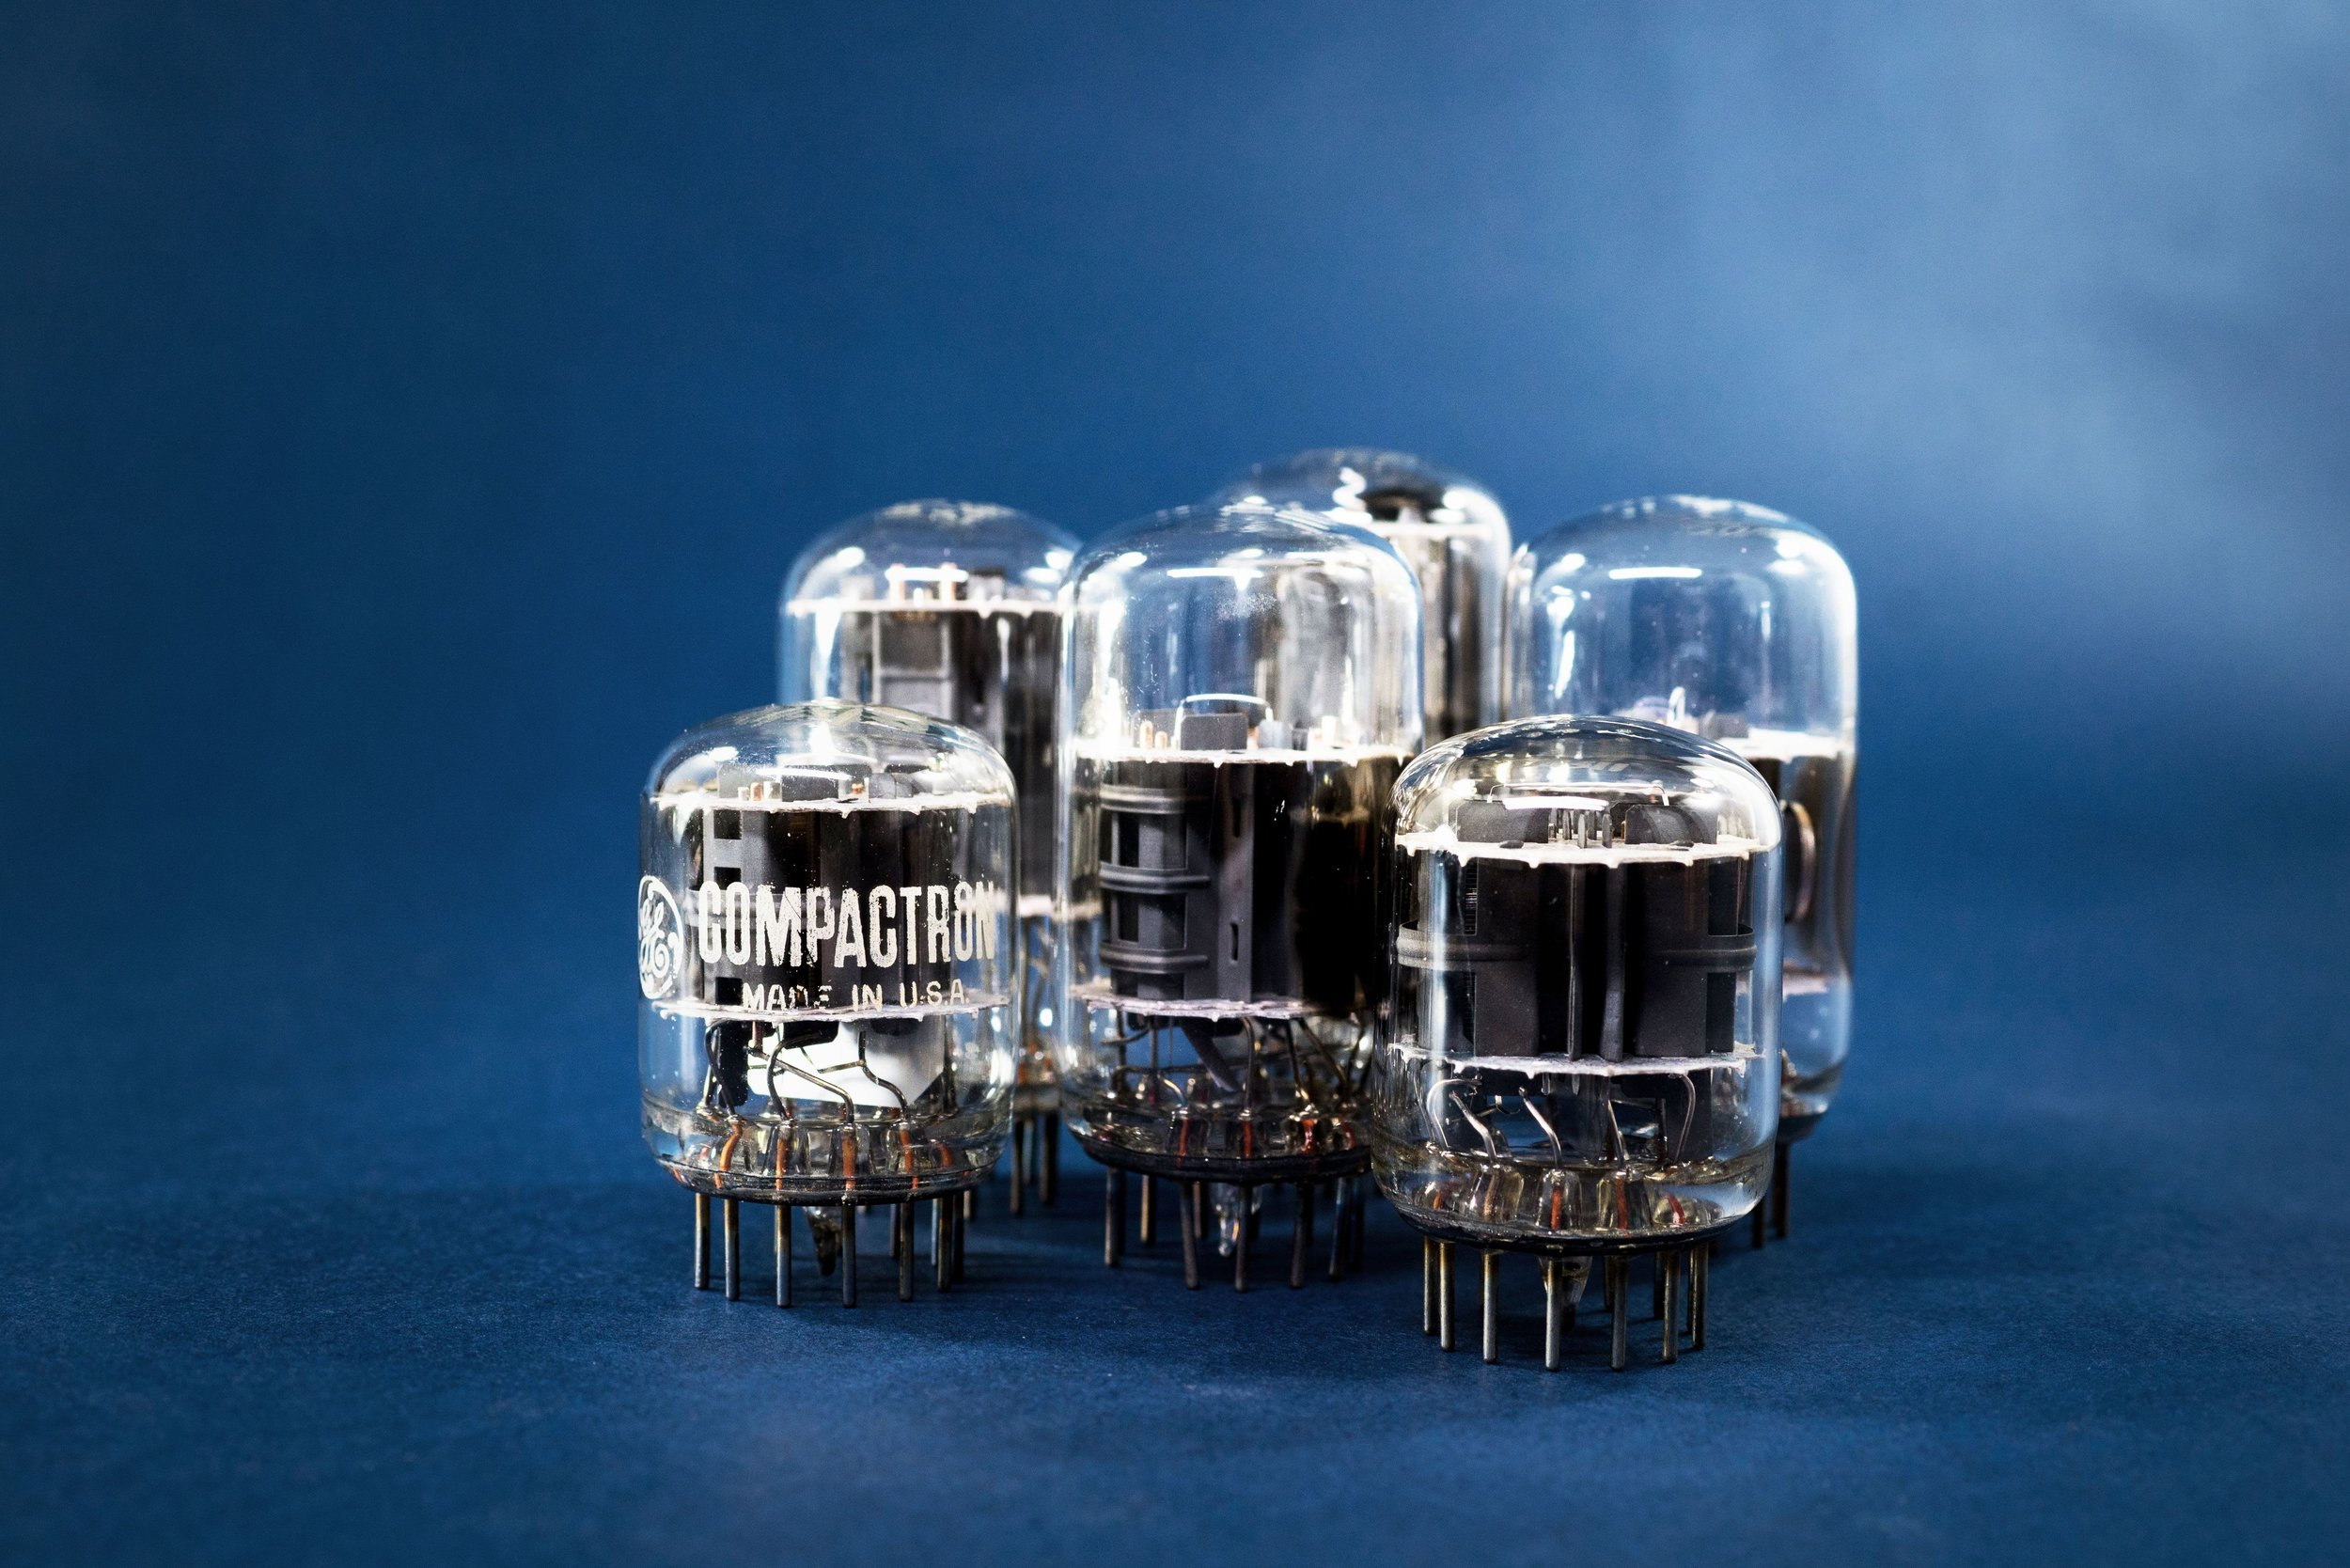 Group of Small Compactron Tubes